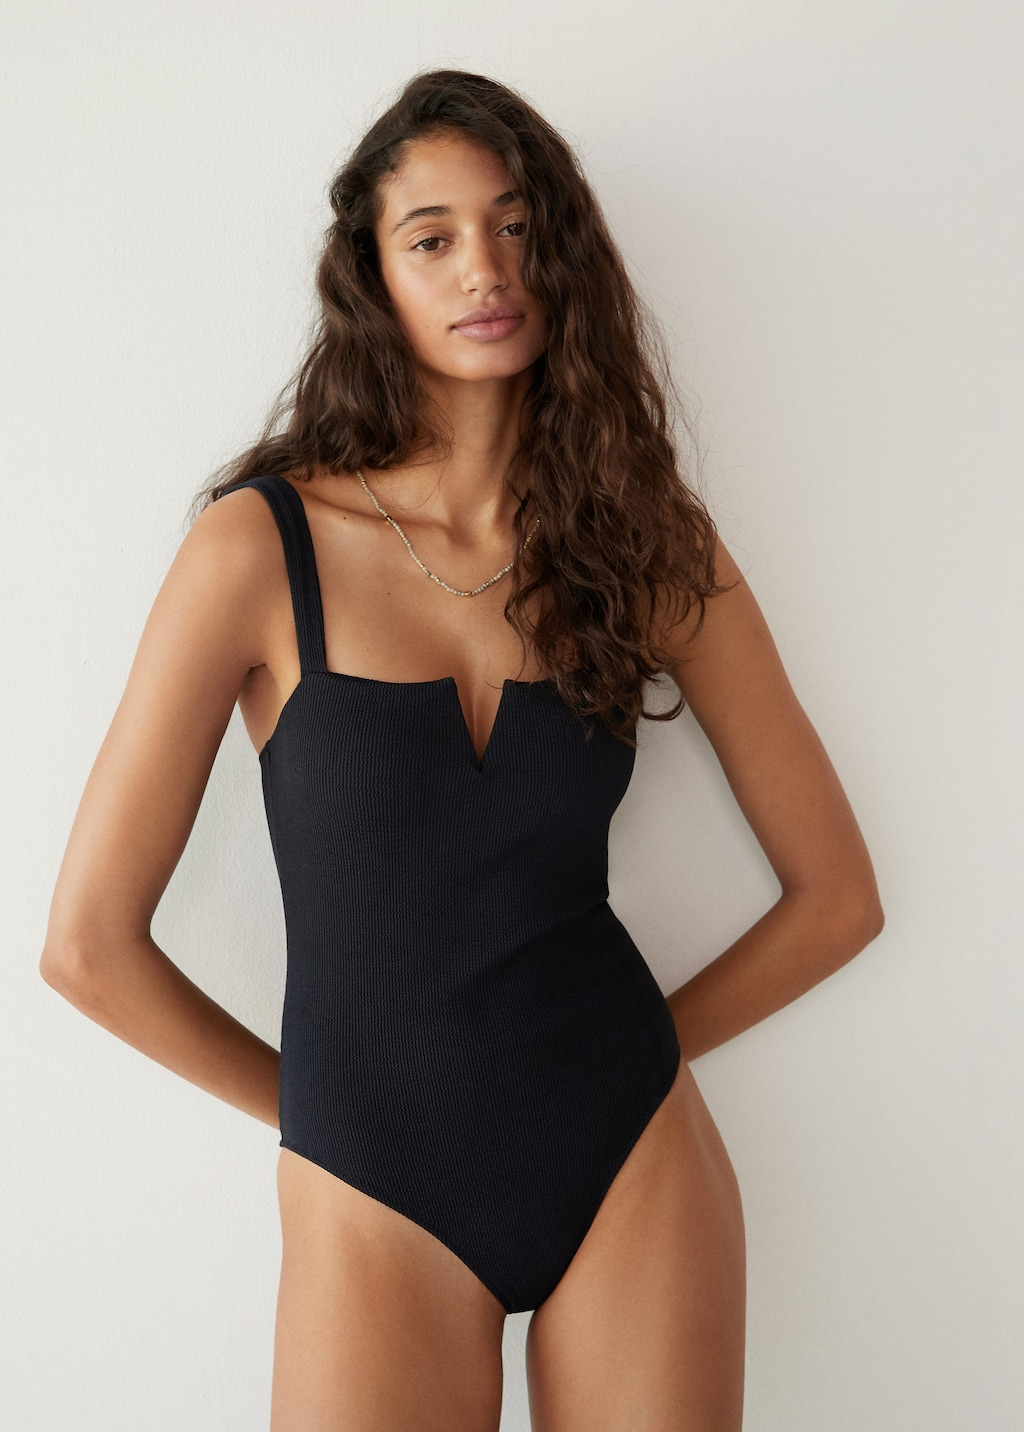 under $100 black ribbed one-piece swimsuit